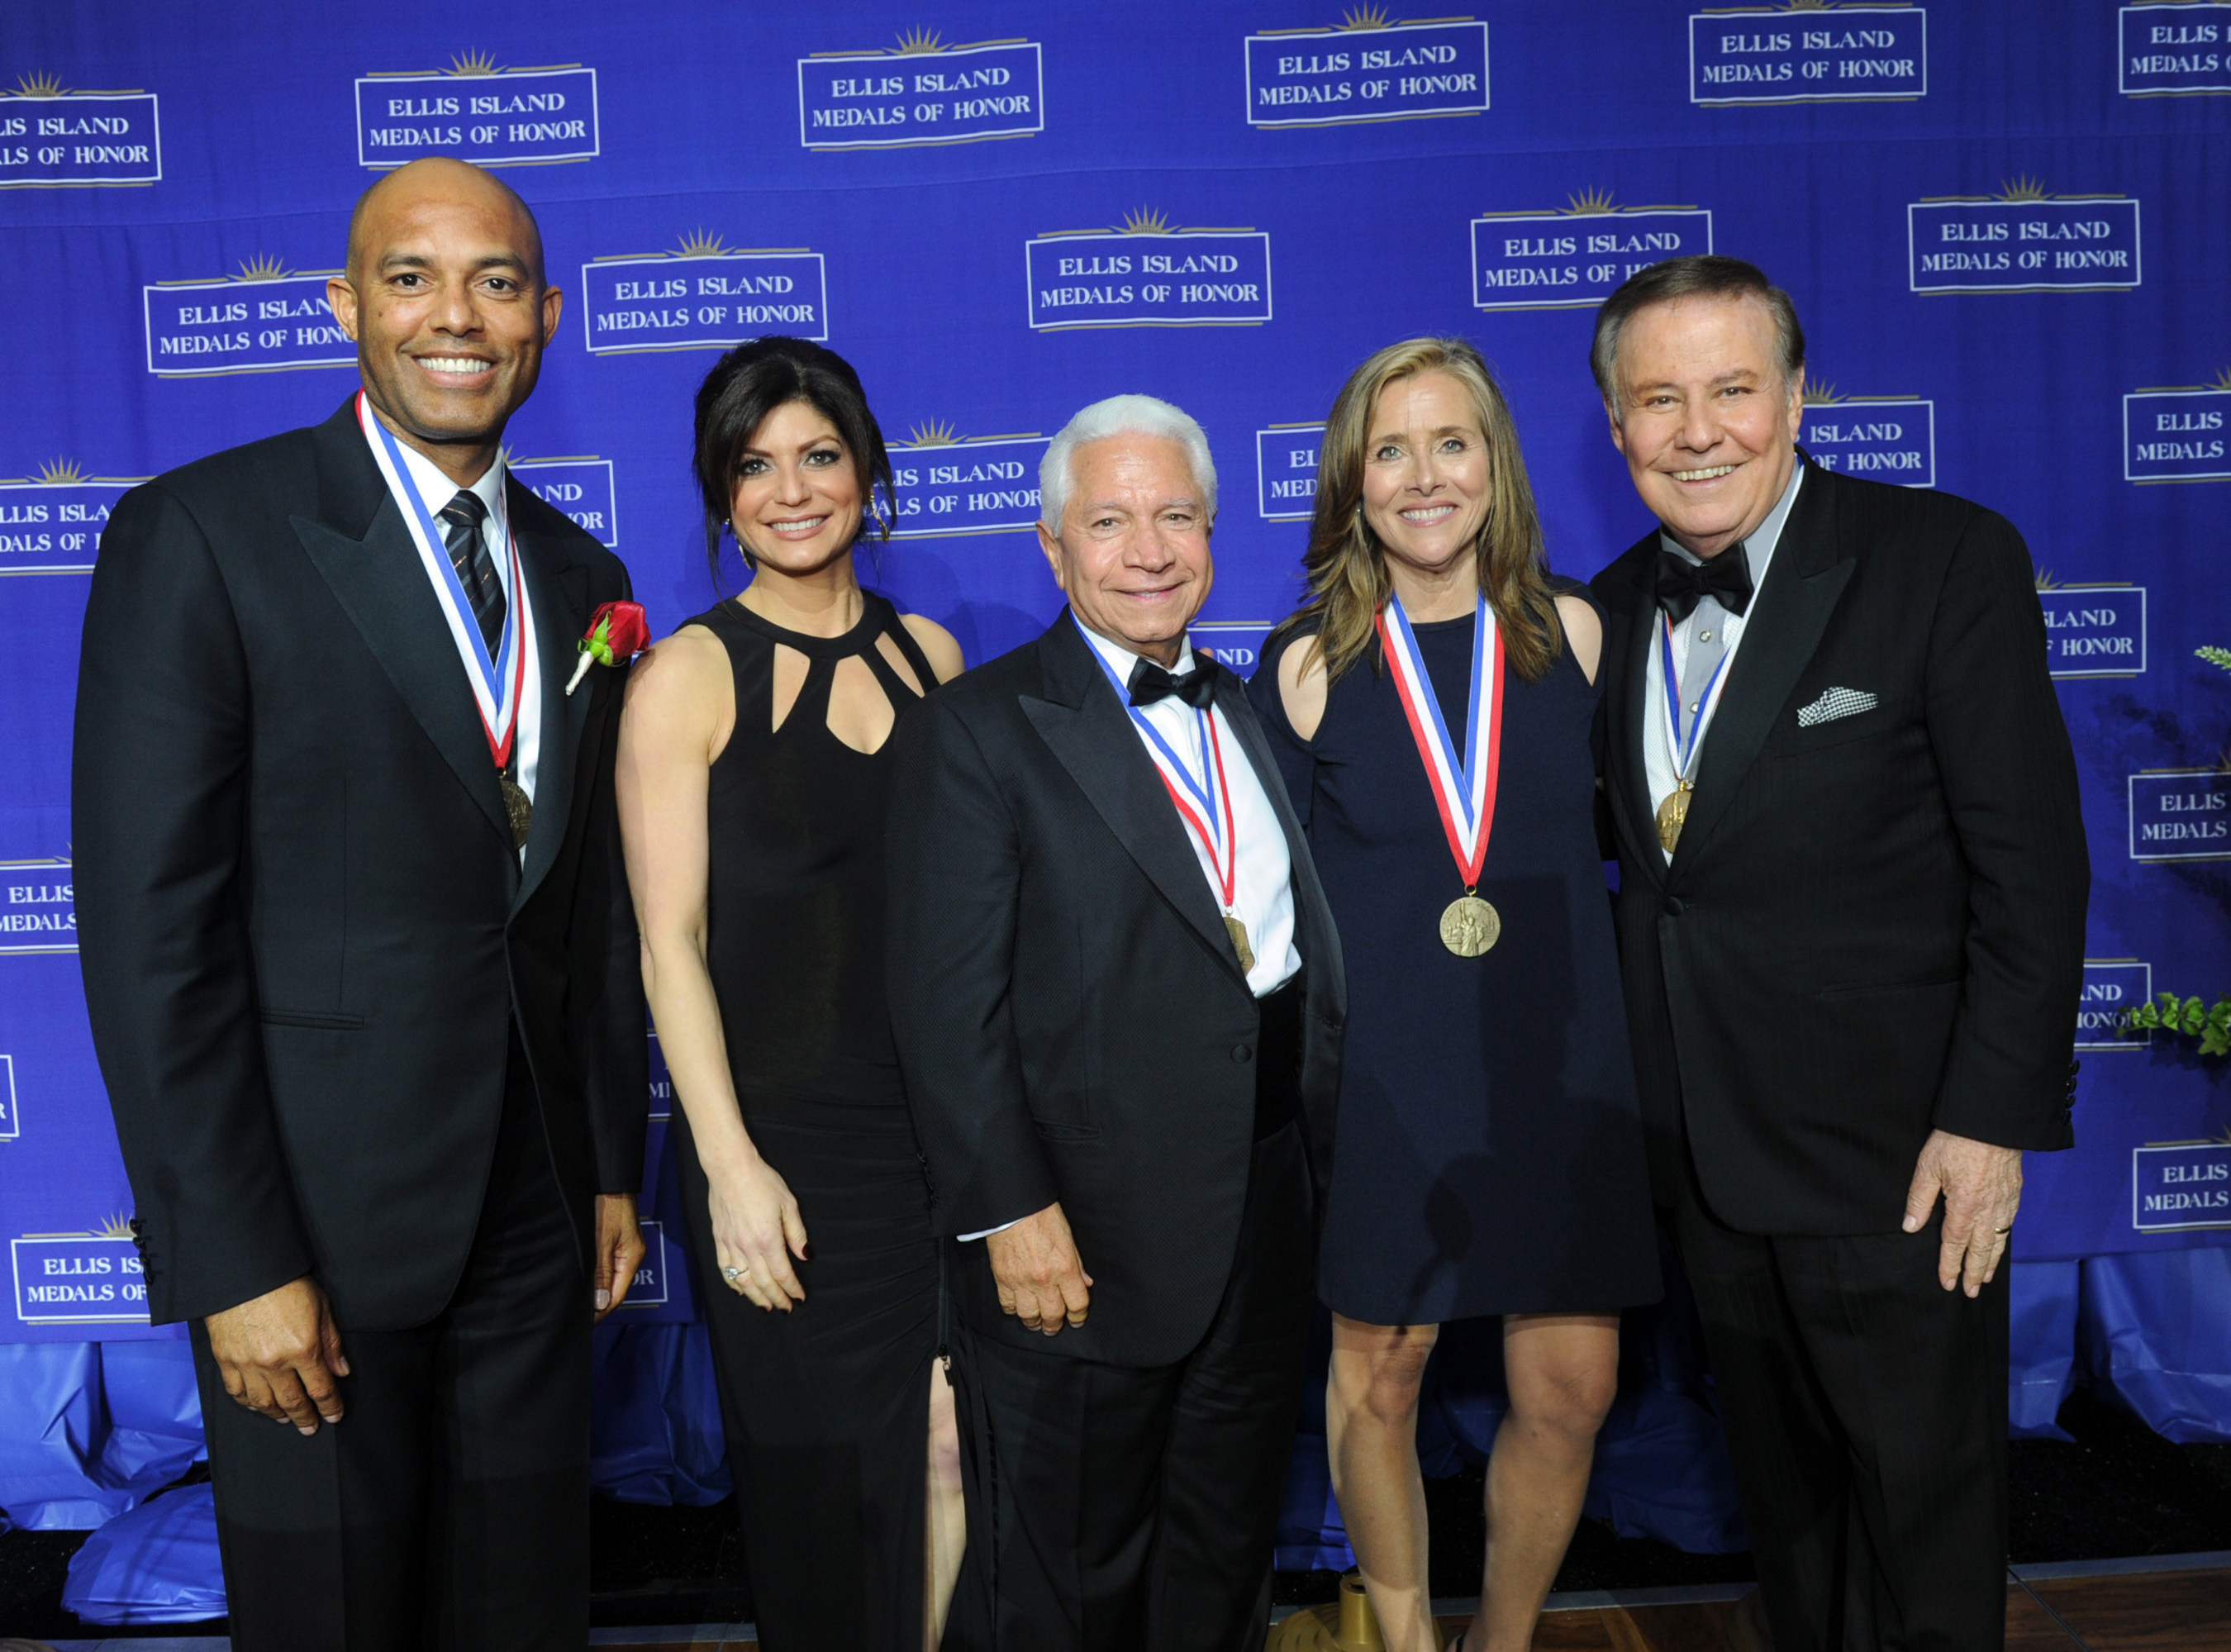 Honorees Mariano Rivera, left, New York Yankees legend, and Meredith Vieira, second right,journalist, pose with NECO chairman Nasser J. Kazeminy, center, and co-hosts from PIX11 Tamsen Fadal, second left, and Marvin Scott,right, at the National Ethnic Coalition of Organizations' 2015 Ellis Island Medal of Honor awards ceremony on Ellis Island, Saturday, May 9, 2015.  Rivera and Vieira were among 101 recipients honored.  NECO's mission is to honor and preserve the diversity of the American people and to foster tolerance, respect and understanding among religious and ethnic groups. (Photo by Diane Bondareff/Invision for NECO/AP Images)